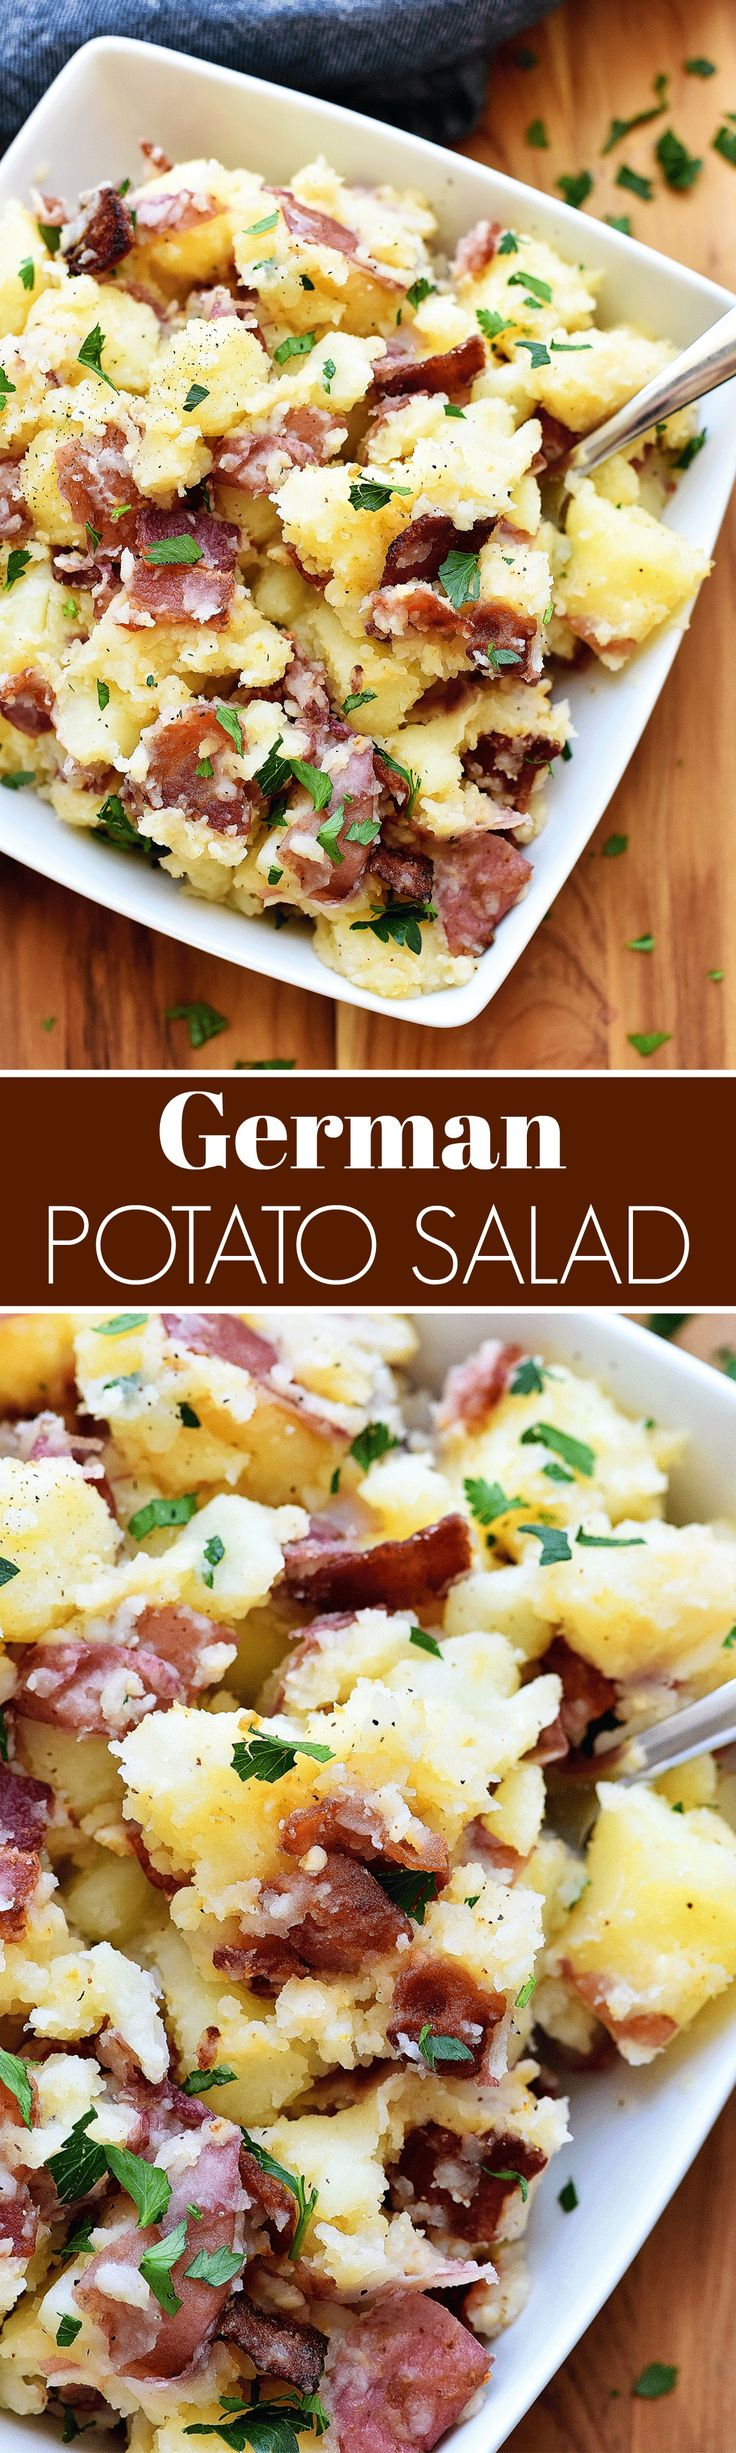 Truth be told- I am NOT a potato salad fan. Potatoes covered in gloopy mayo has never been my thing. My hubby loves it though, weirdo. Bless his heart. haha. JK. For some reason when I was planning our 4th of July menu I thought a potato salad would go good with what I had... Read More »